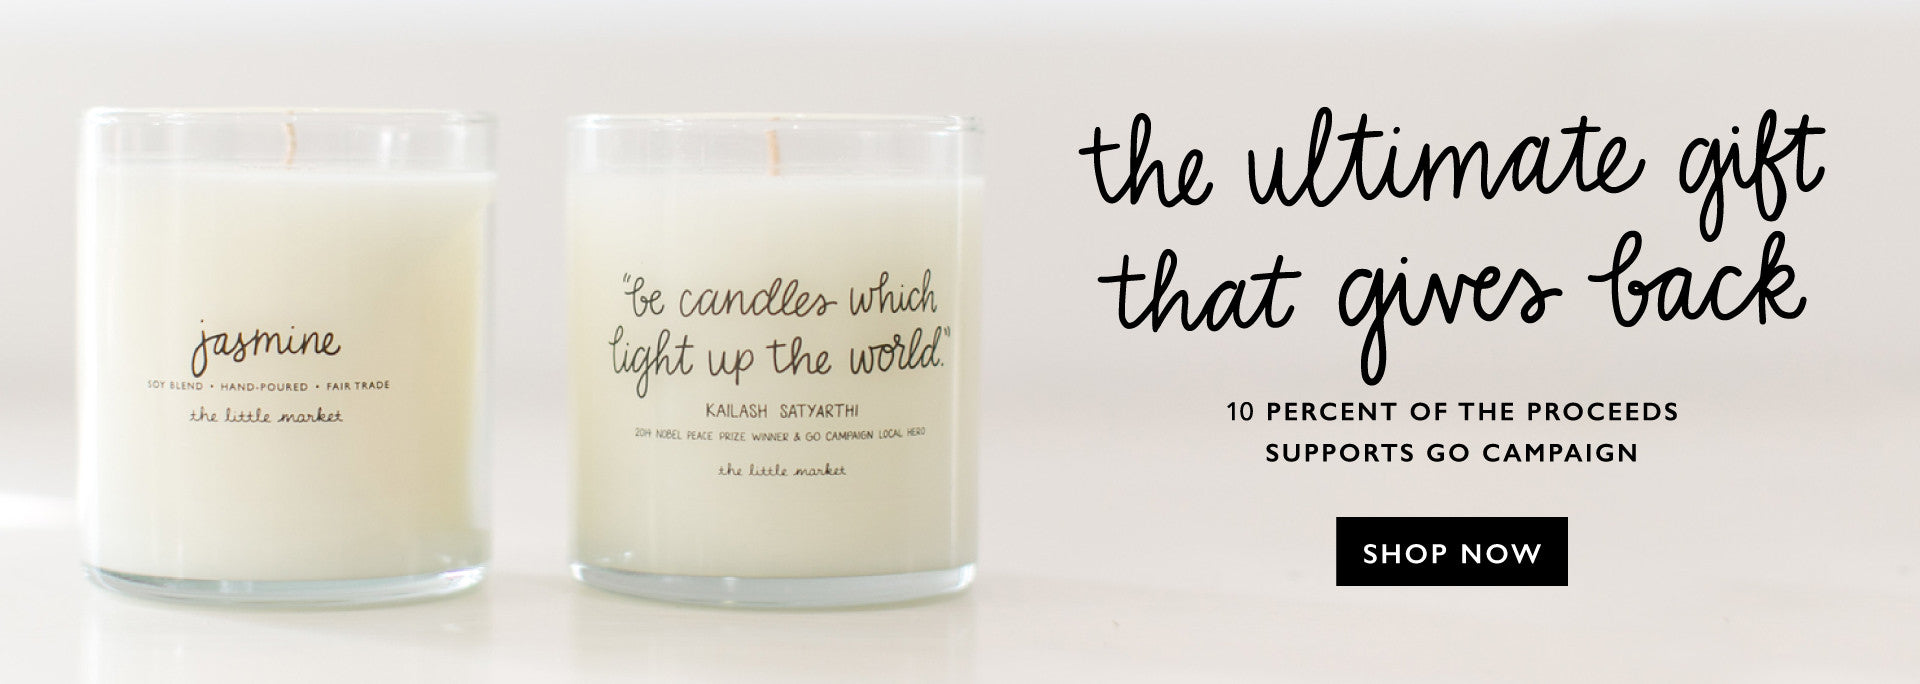 The Little Market Fair Trade Candle | Gifts that Give Back